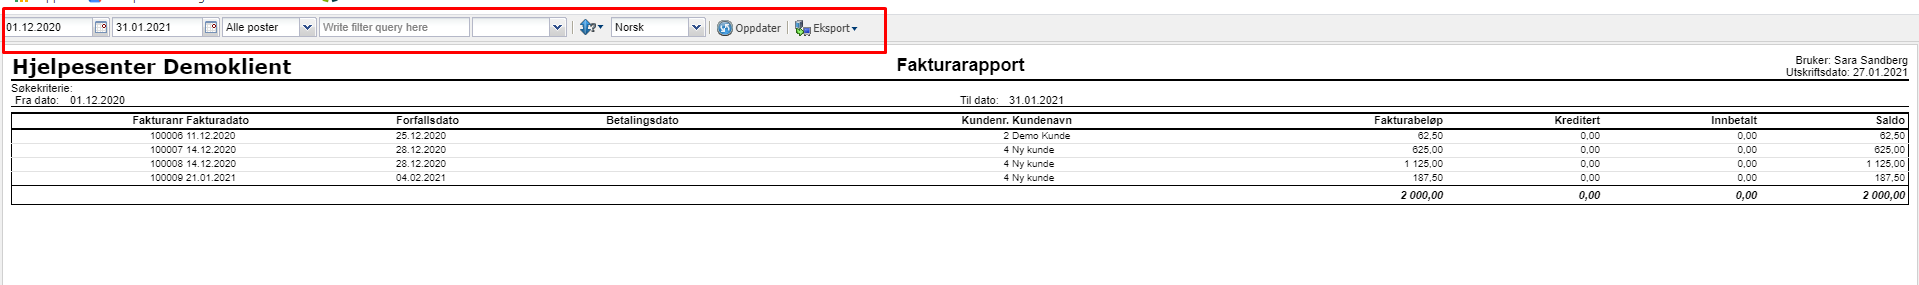 fakturarapport.png